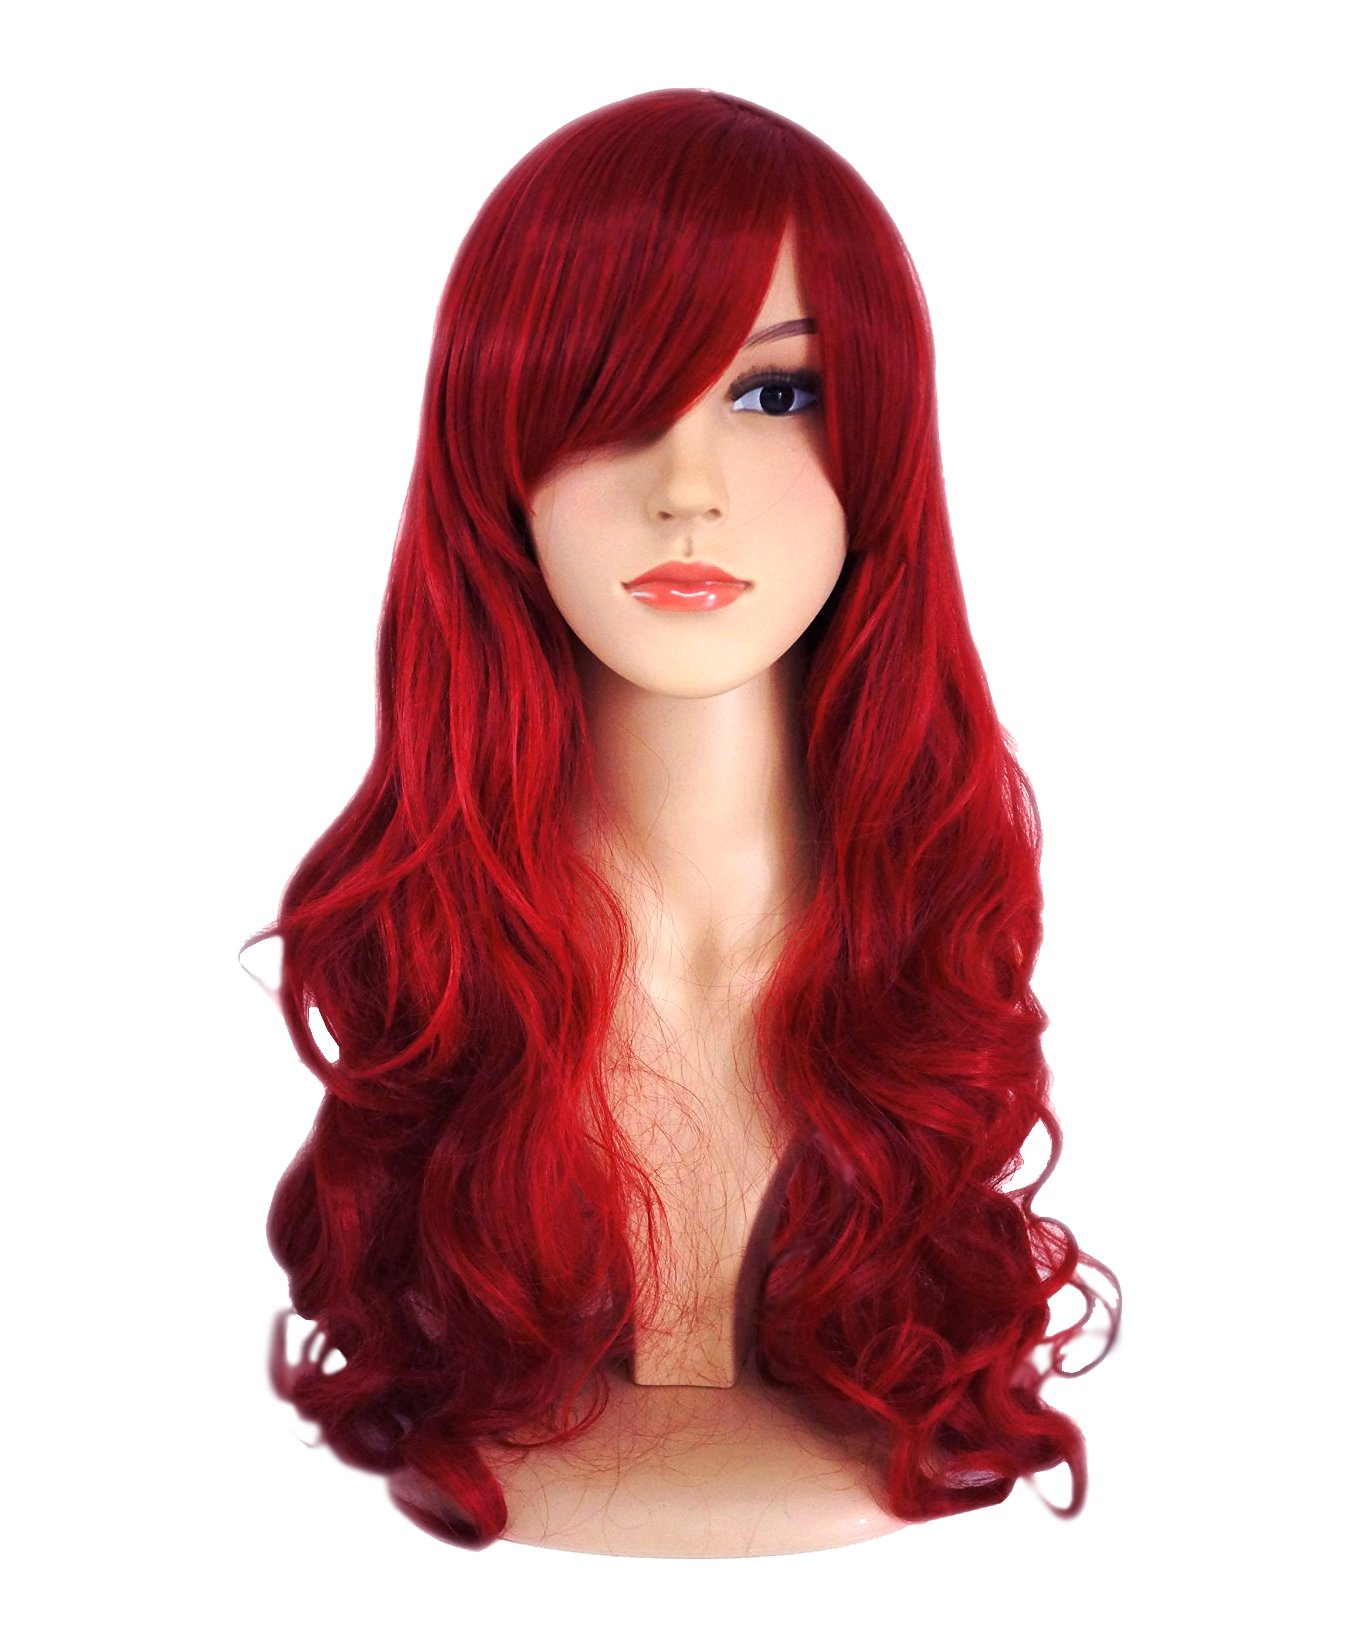 Another Me Wig Women's Long Big Wavy Hair 25 Inches Dark Wine Red Ultra Soft Heat Resistant Fiber Party Cosplay Accessories by ANOTHERME